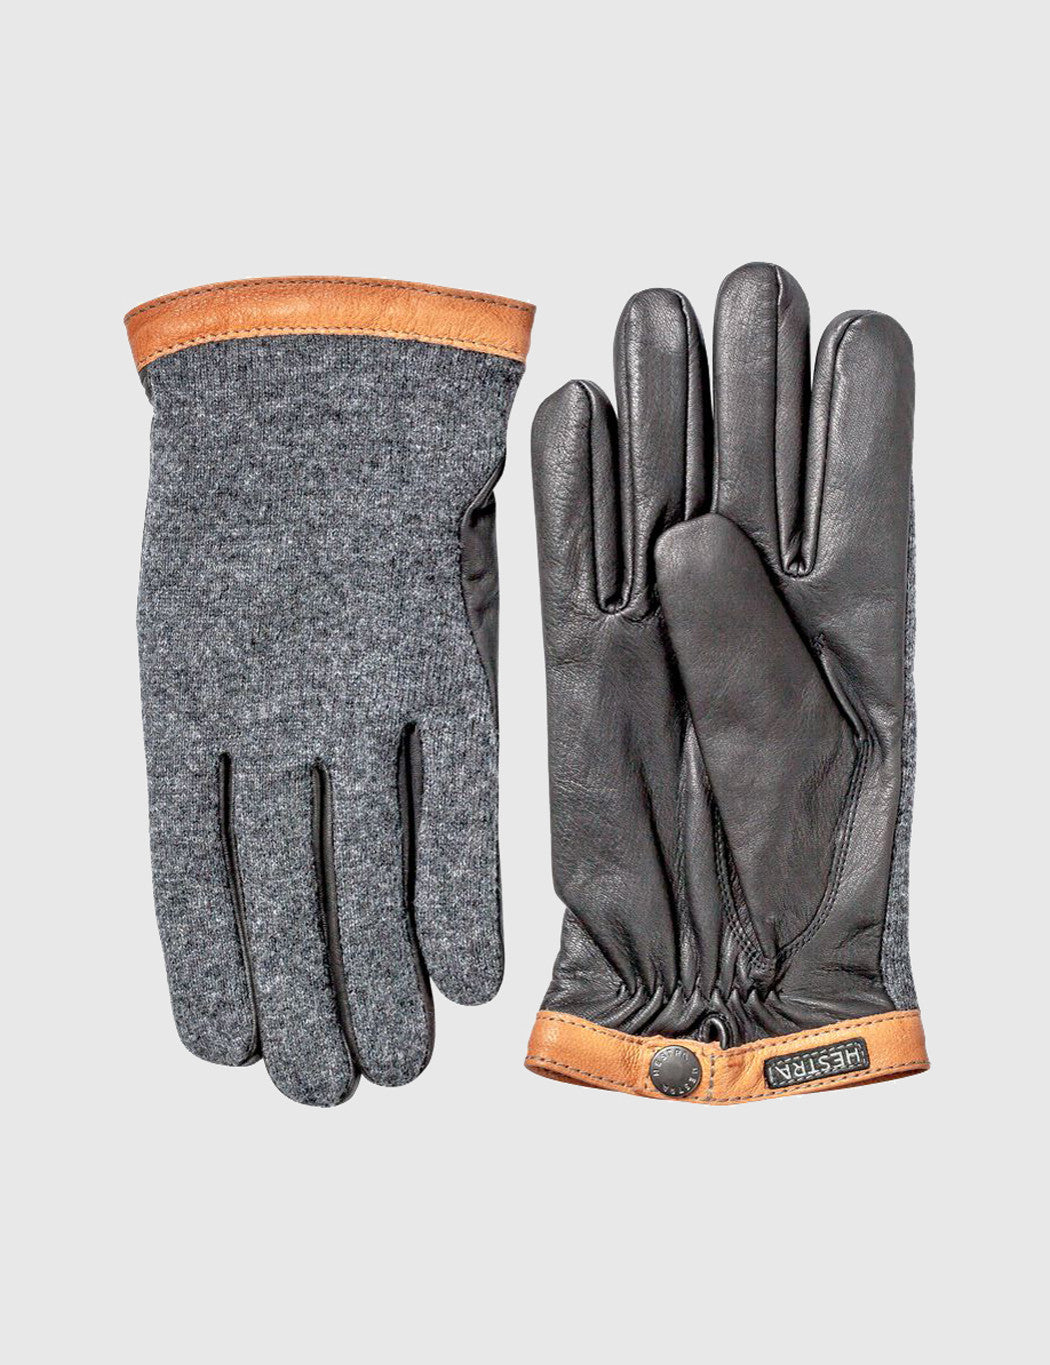 Hestra Tricot Deerskin Wool Gloves - Charcoal/Black